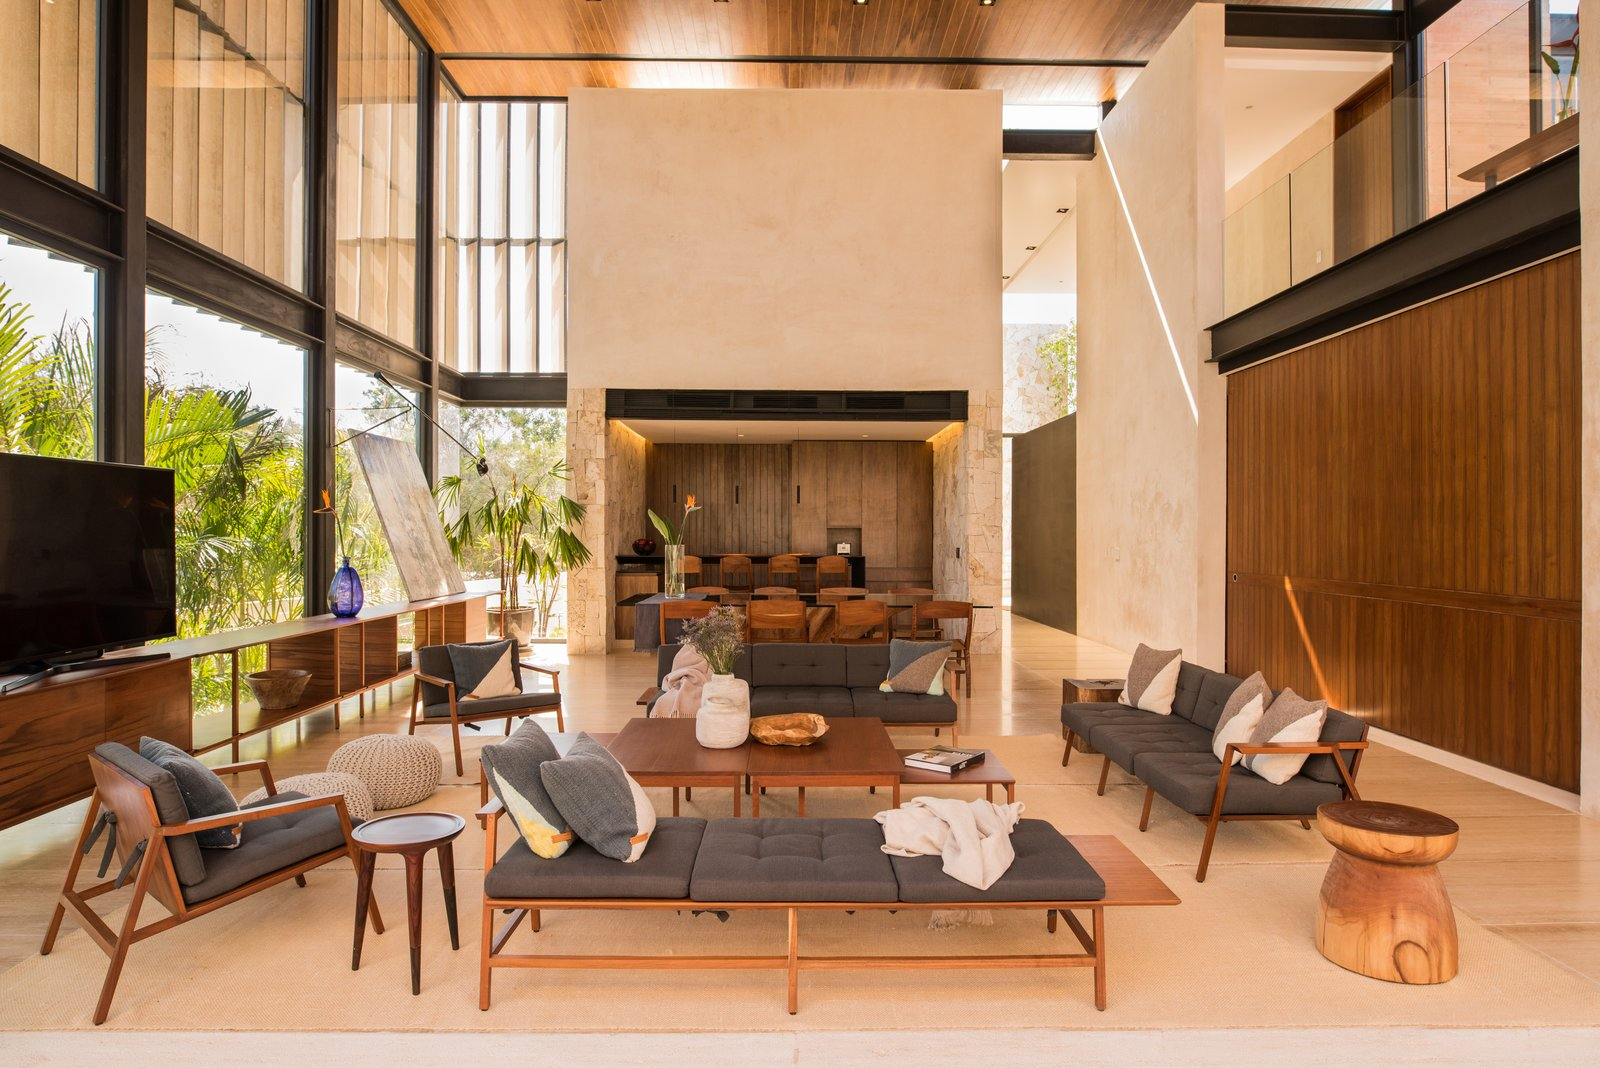 Living Tagged: Living Room, Sofa, Ceiling Lighting, Wall Lighting, Console Tables, Bench, Travertine Floor, Pendant Lighting, and Marble Floor.  Casa Chaaltun by tescala